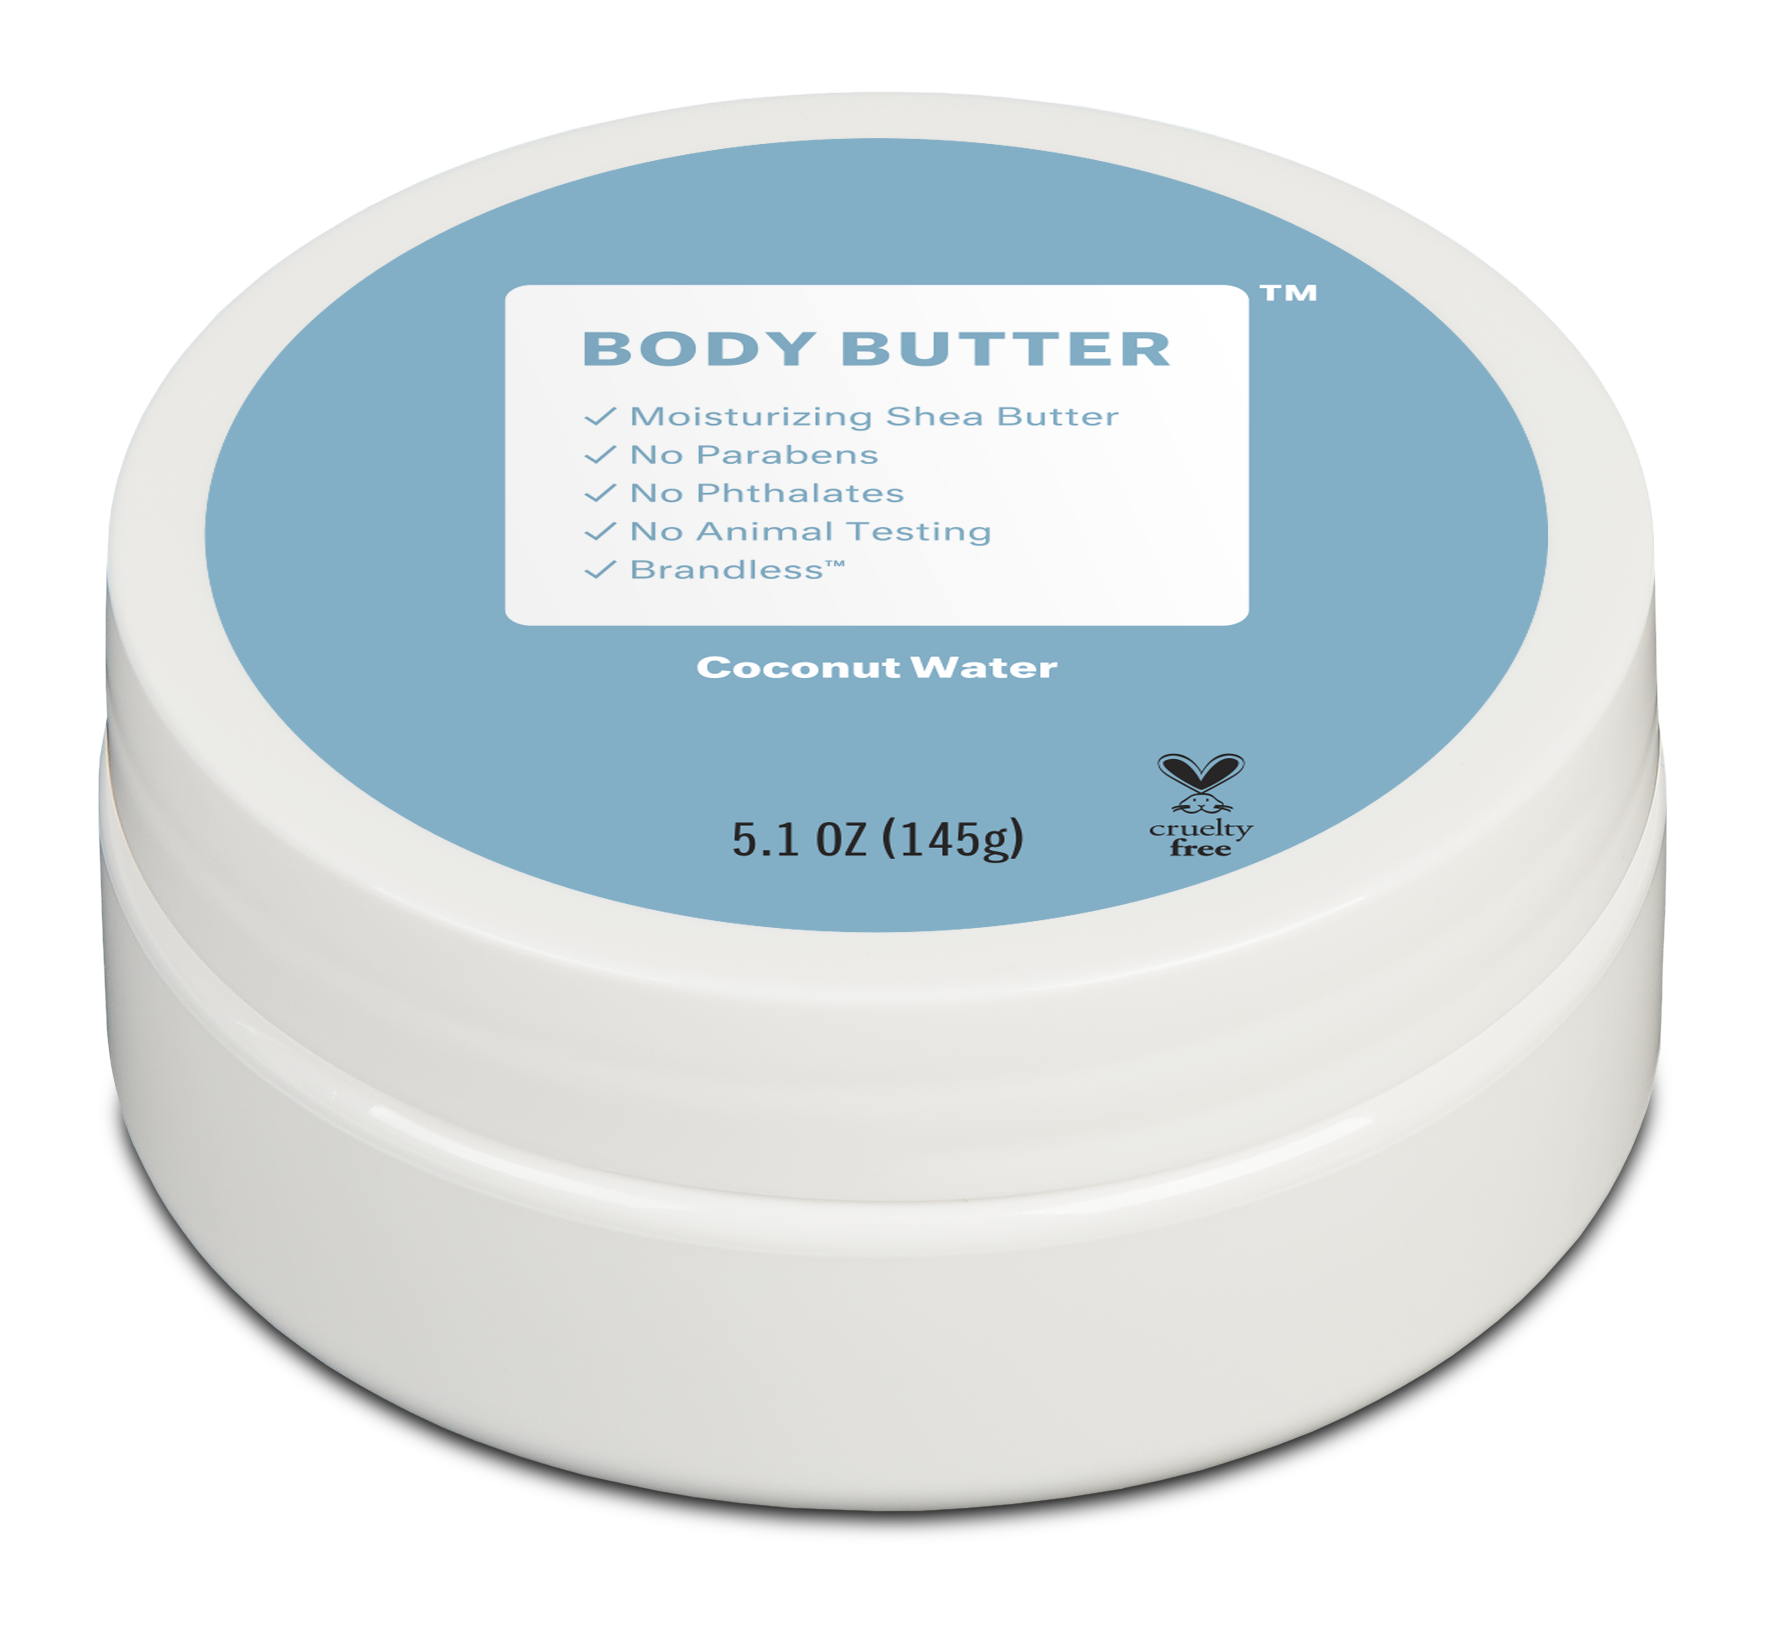 Brandless: Body Butter, Coconut Water